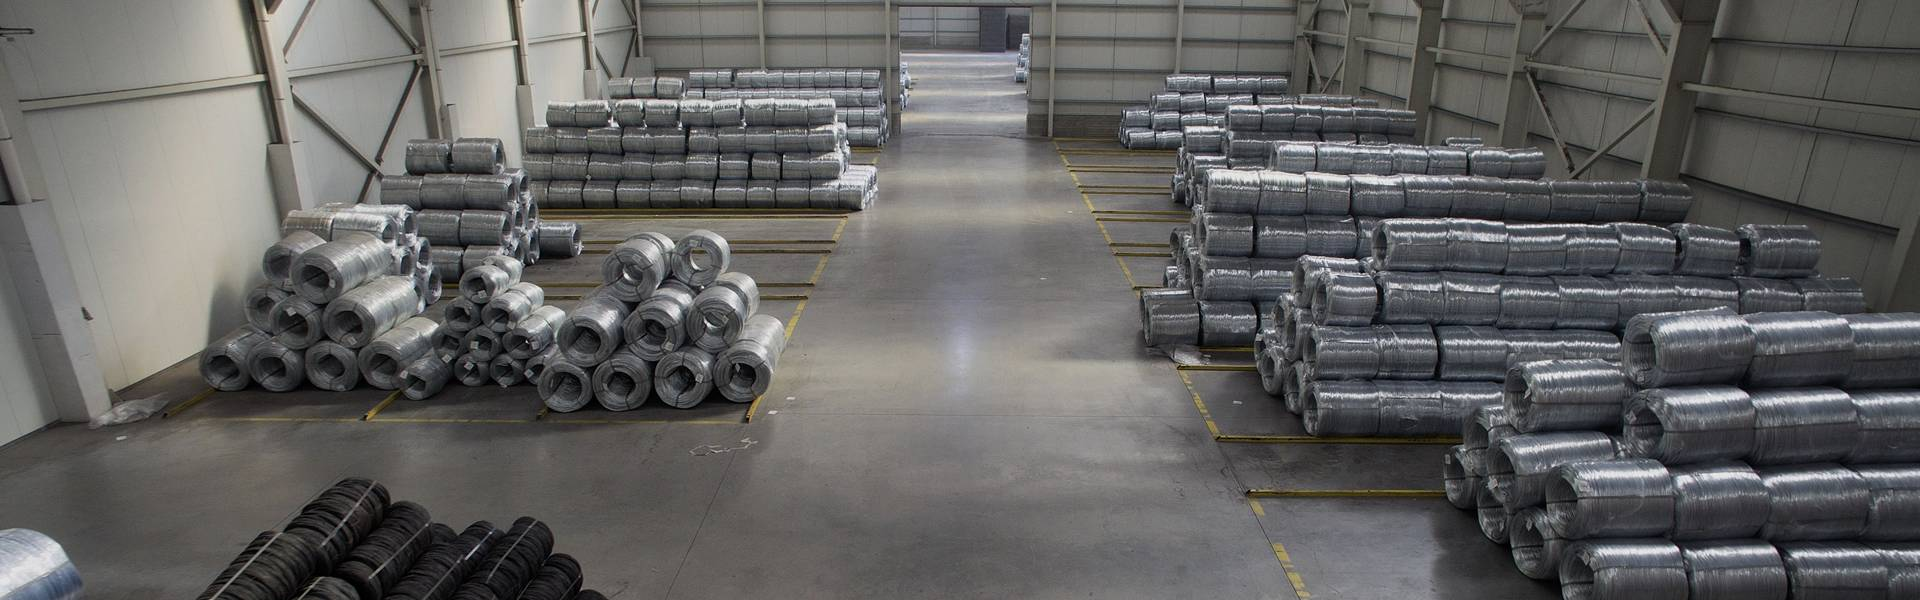 Several different materials of steel wires in the warehouse.